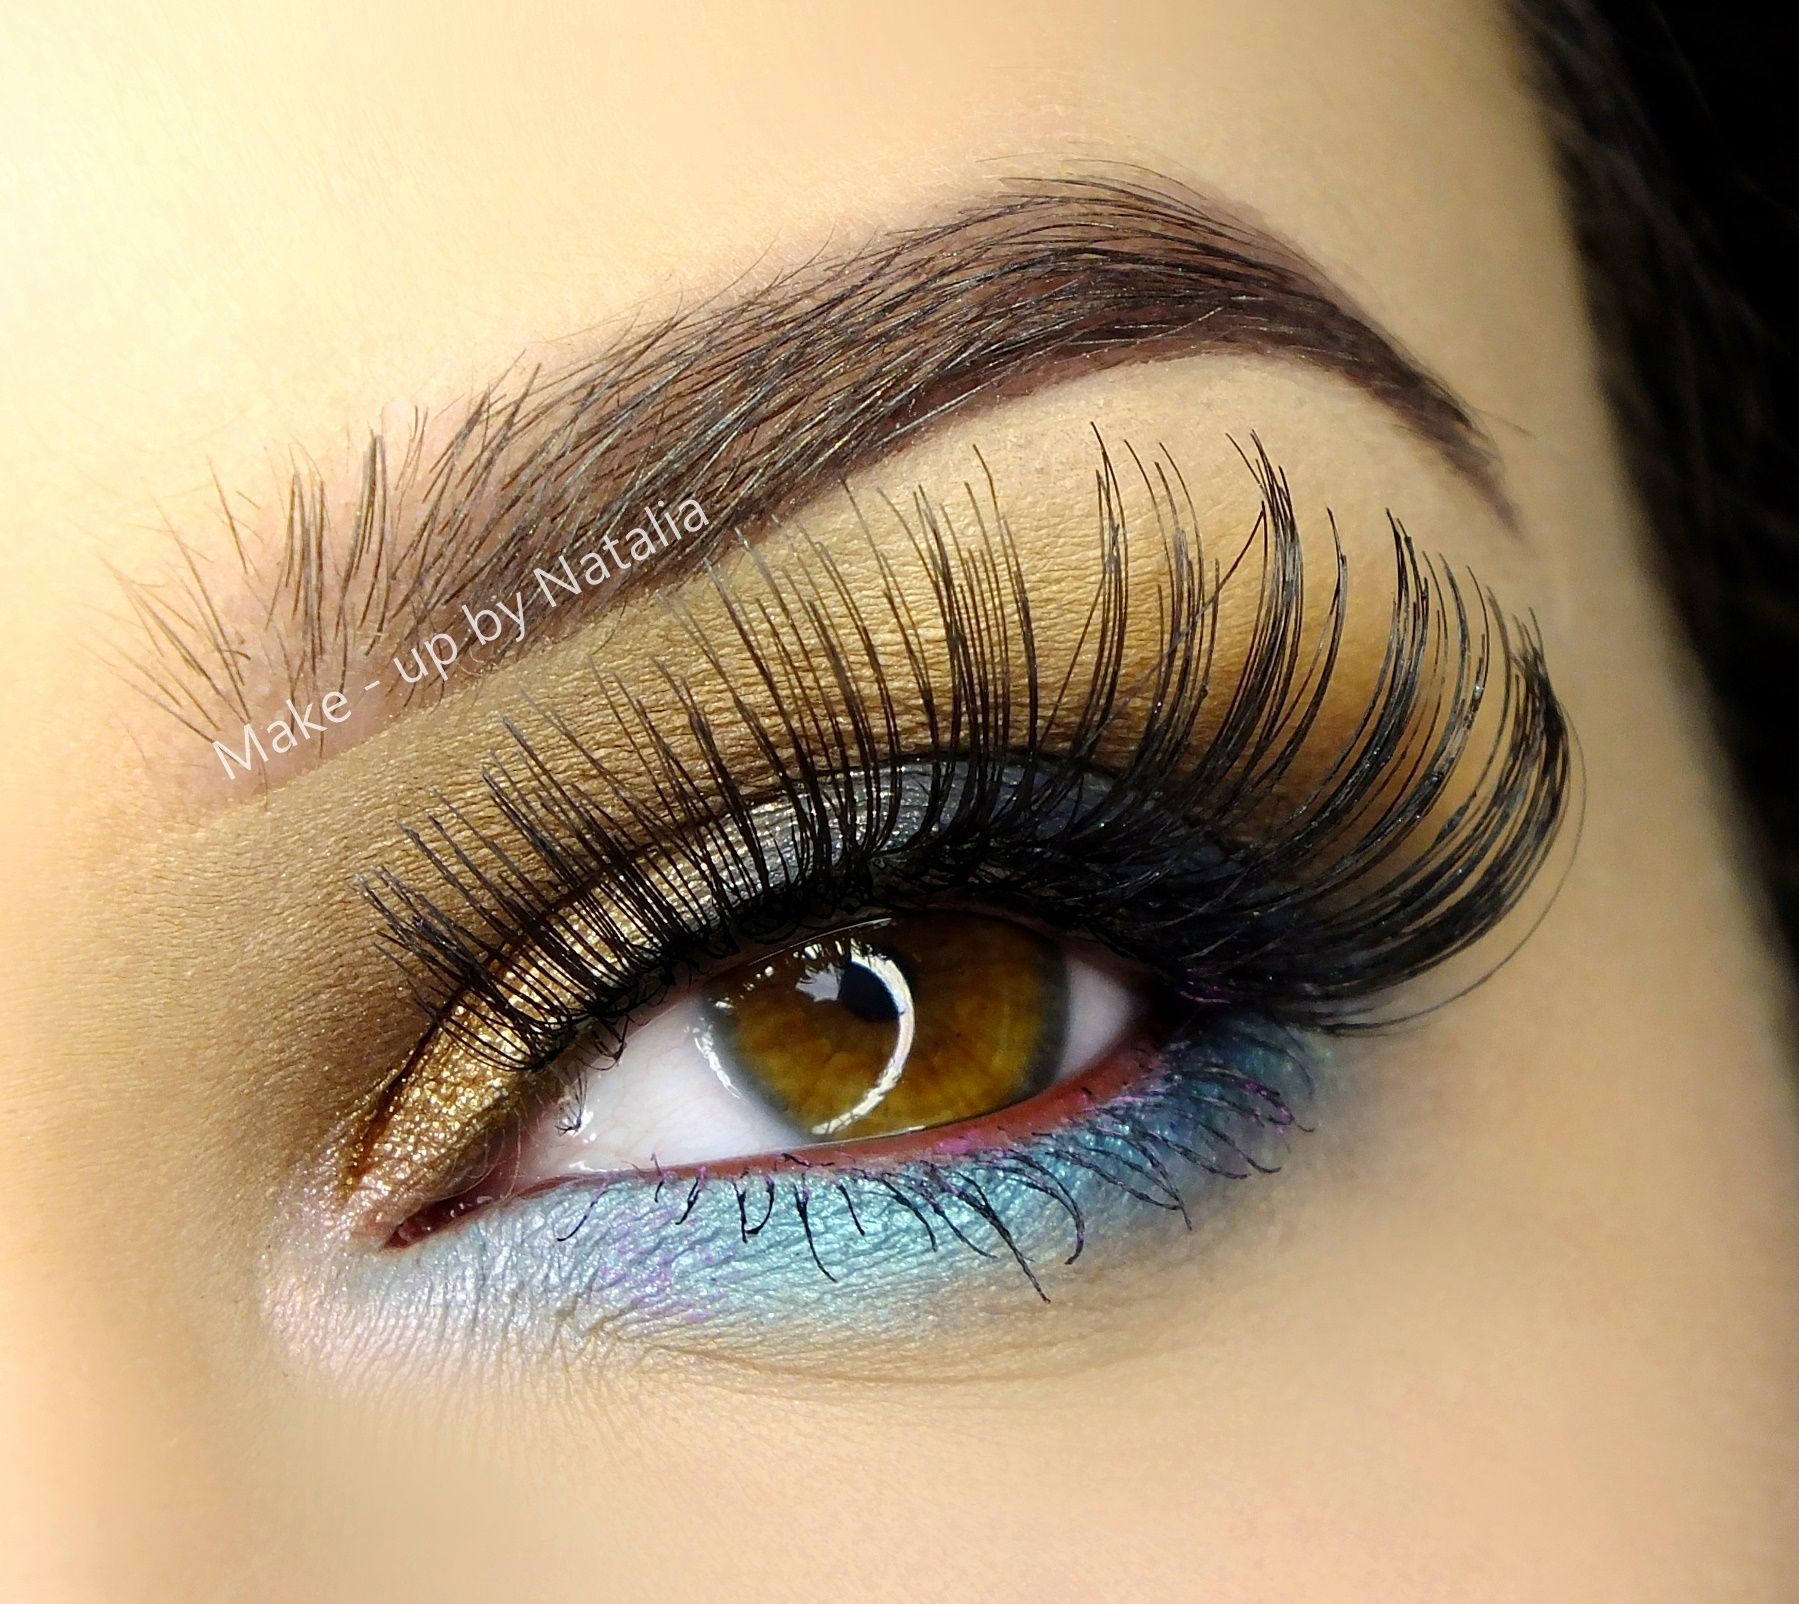 Long lashes accent this glamorous look by Makeupby